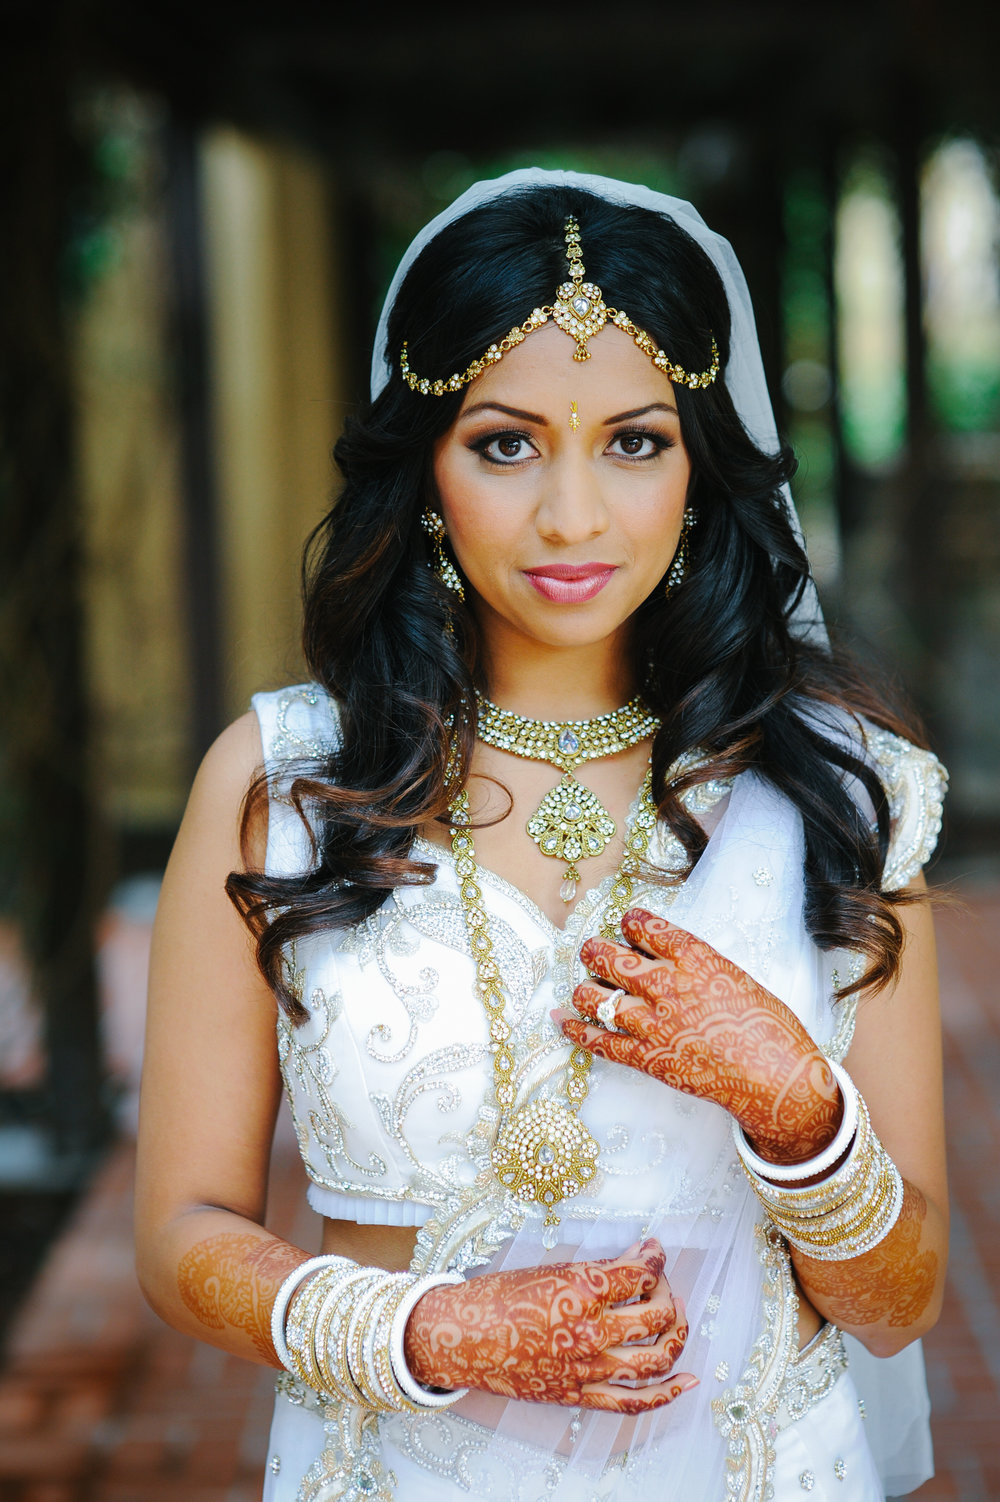 JKP_Indian_Weddings_0009.JPG